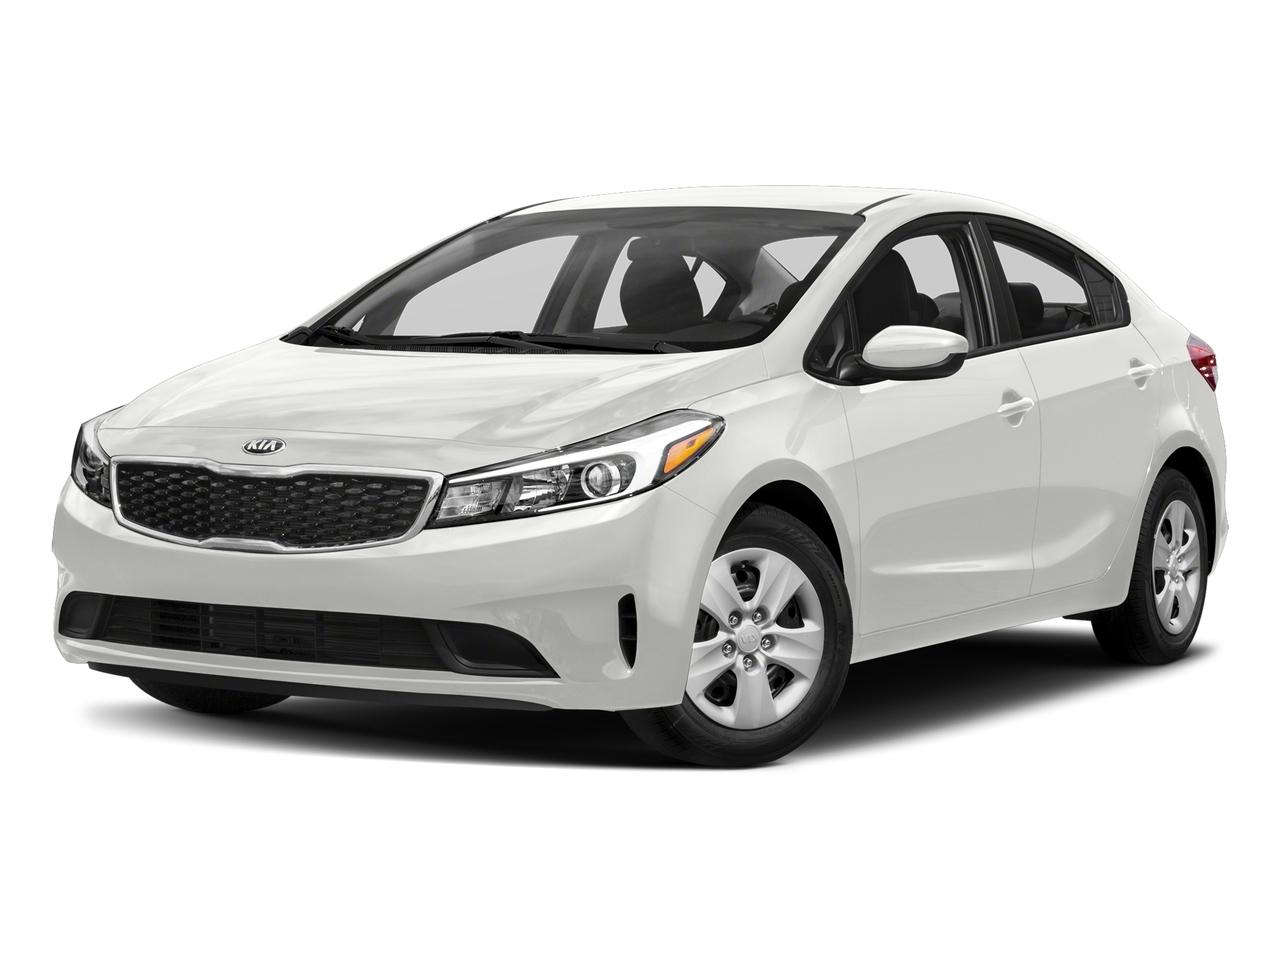 2017 Kia Forte Vehicle Photo in Akron, OH 44303